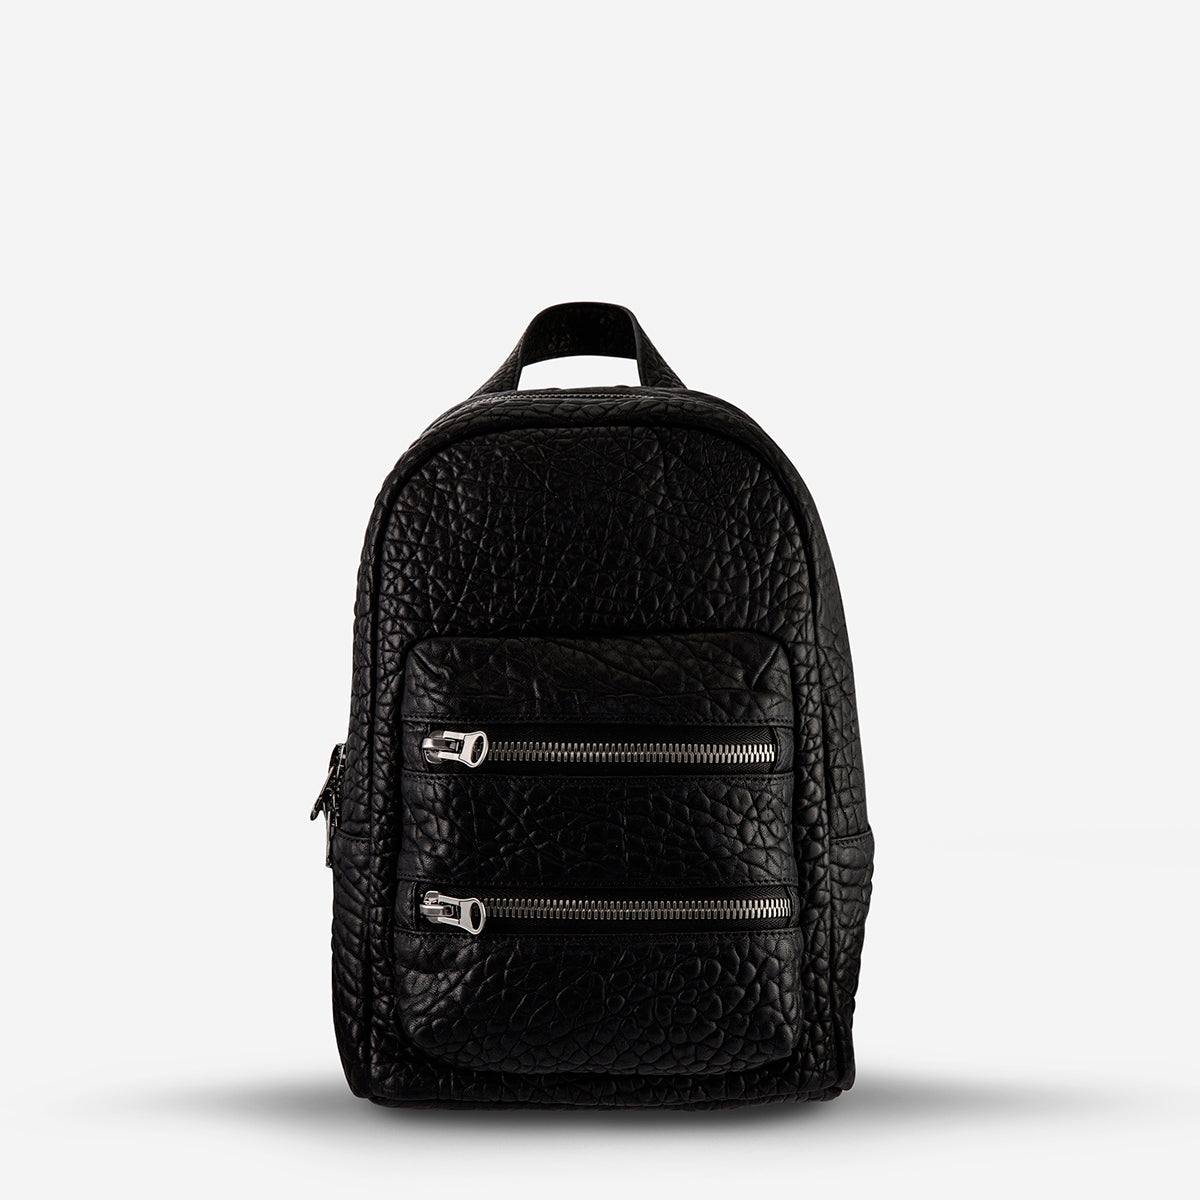 Status Anxiety Racketeer Leather Backpack - Black Bubble